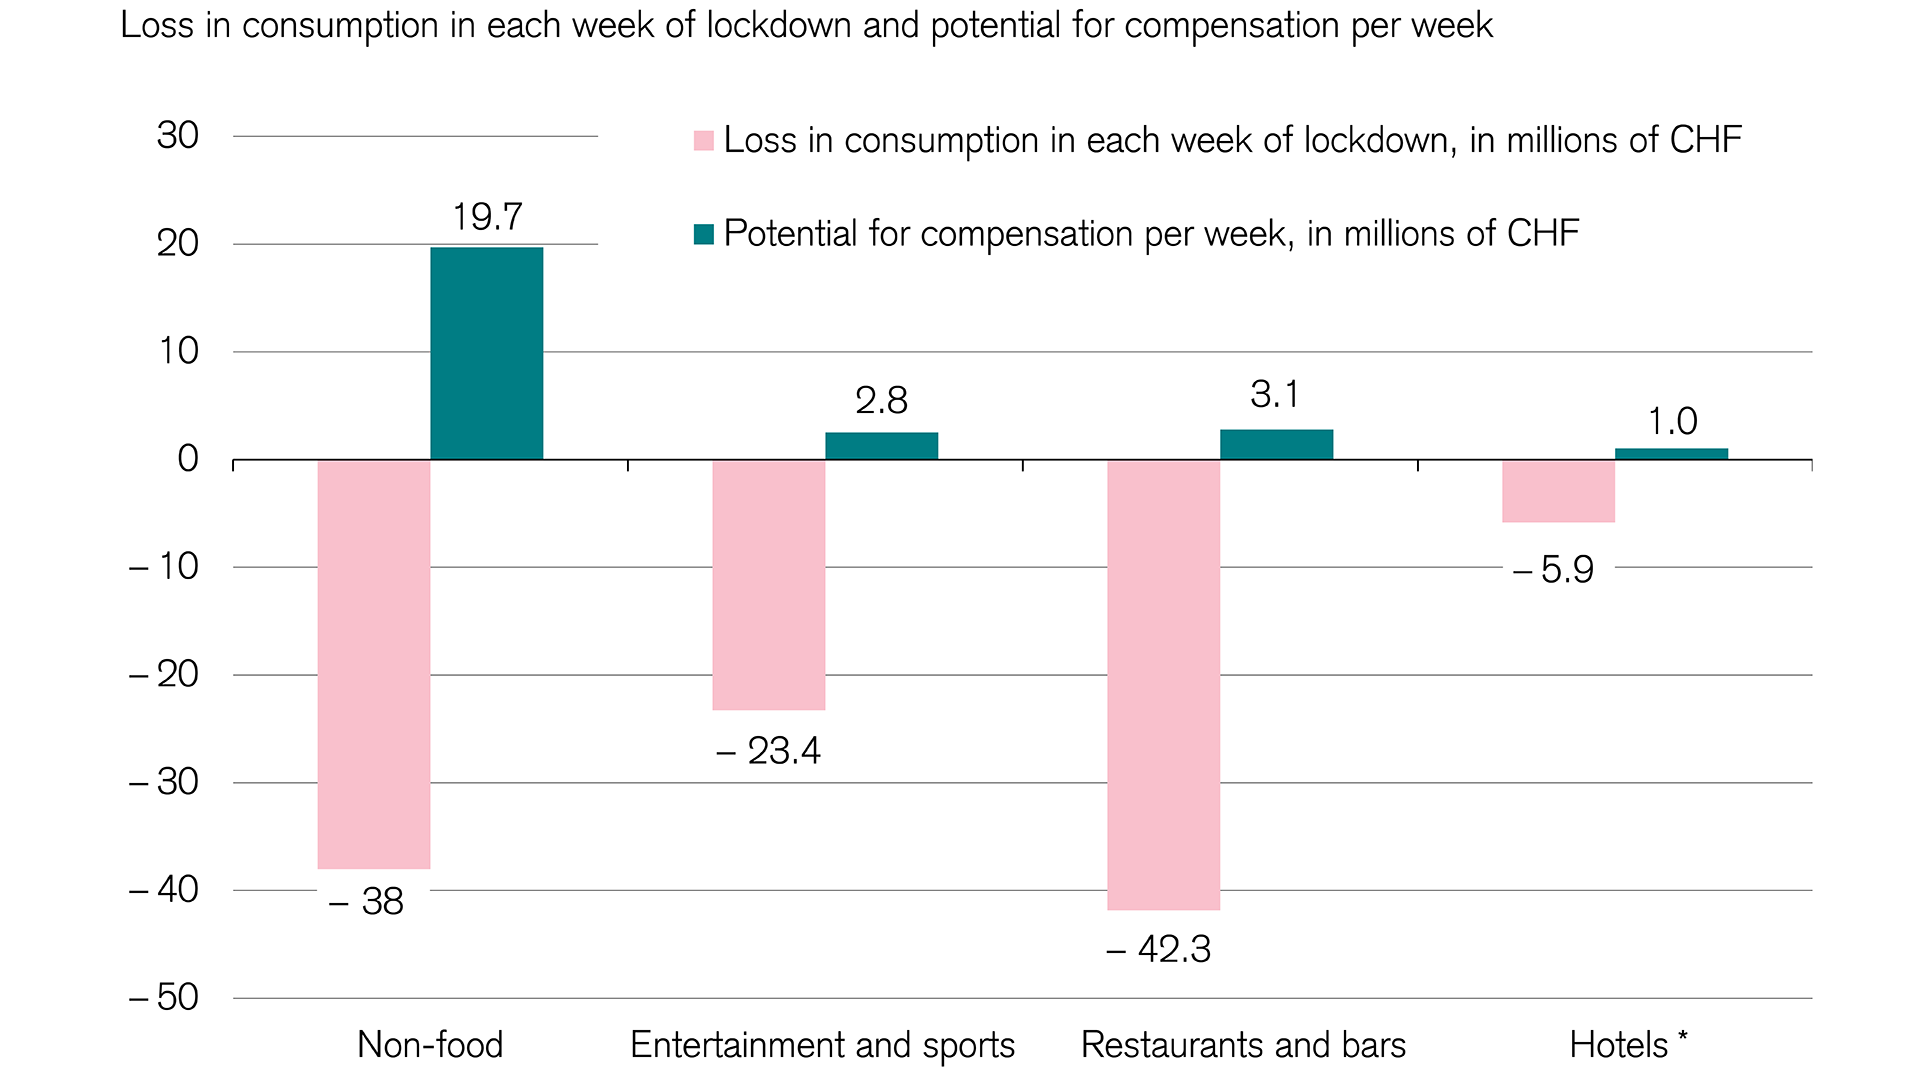 Lost consumer spending in the lockdown and the potential to catch up by industry